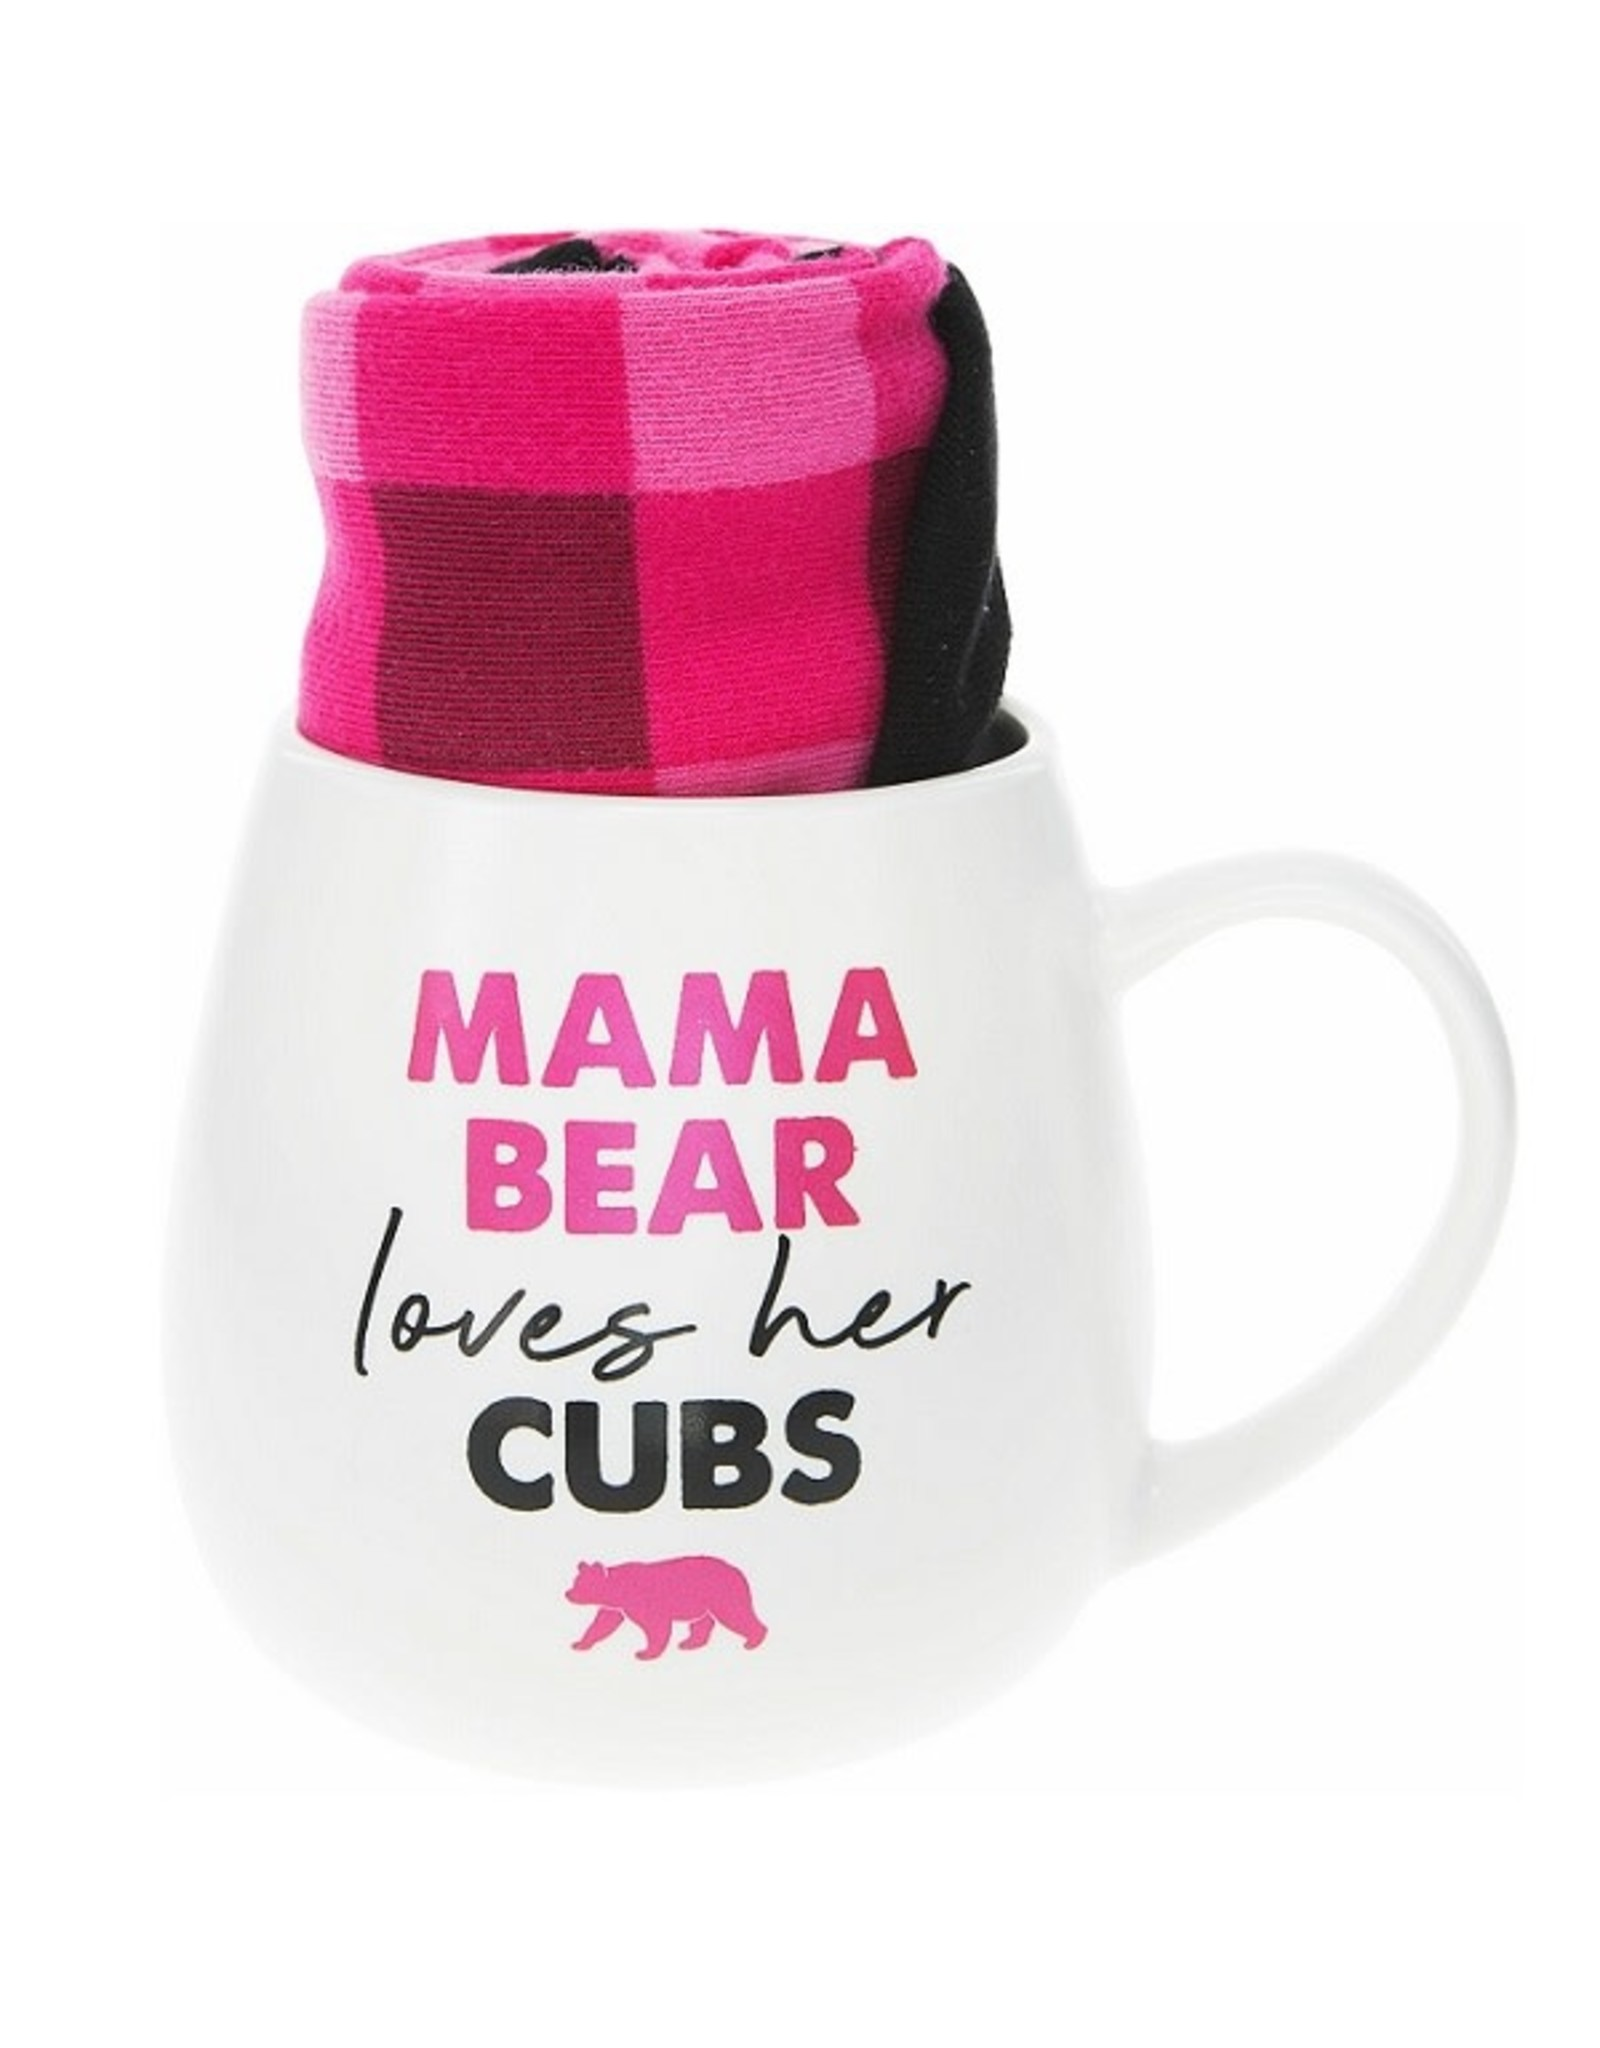 Pavilion Gift MAMA BEAR MUG AND SOCK SET